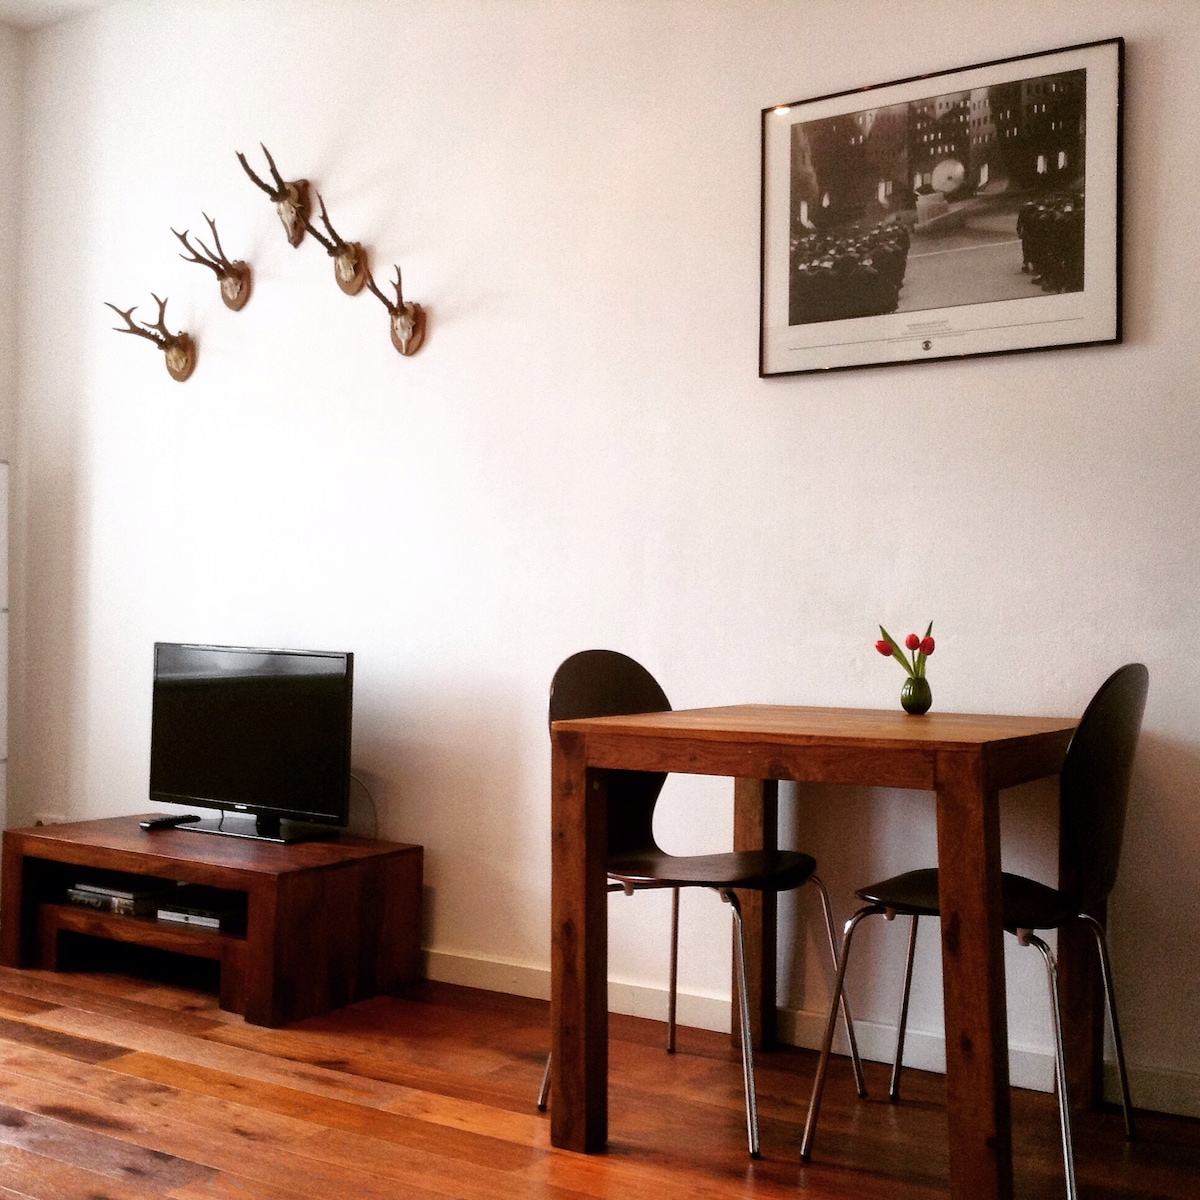 Closer look of the wooden furniture in the living room